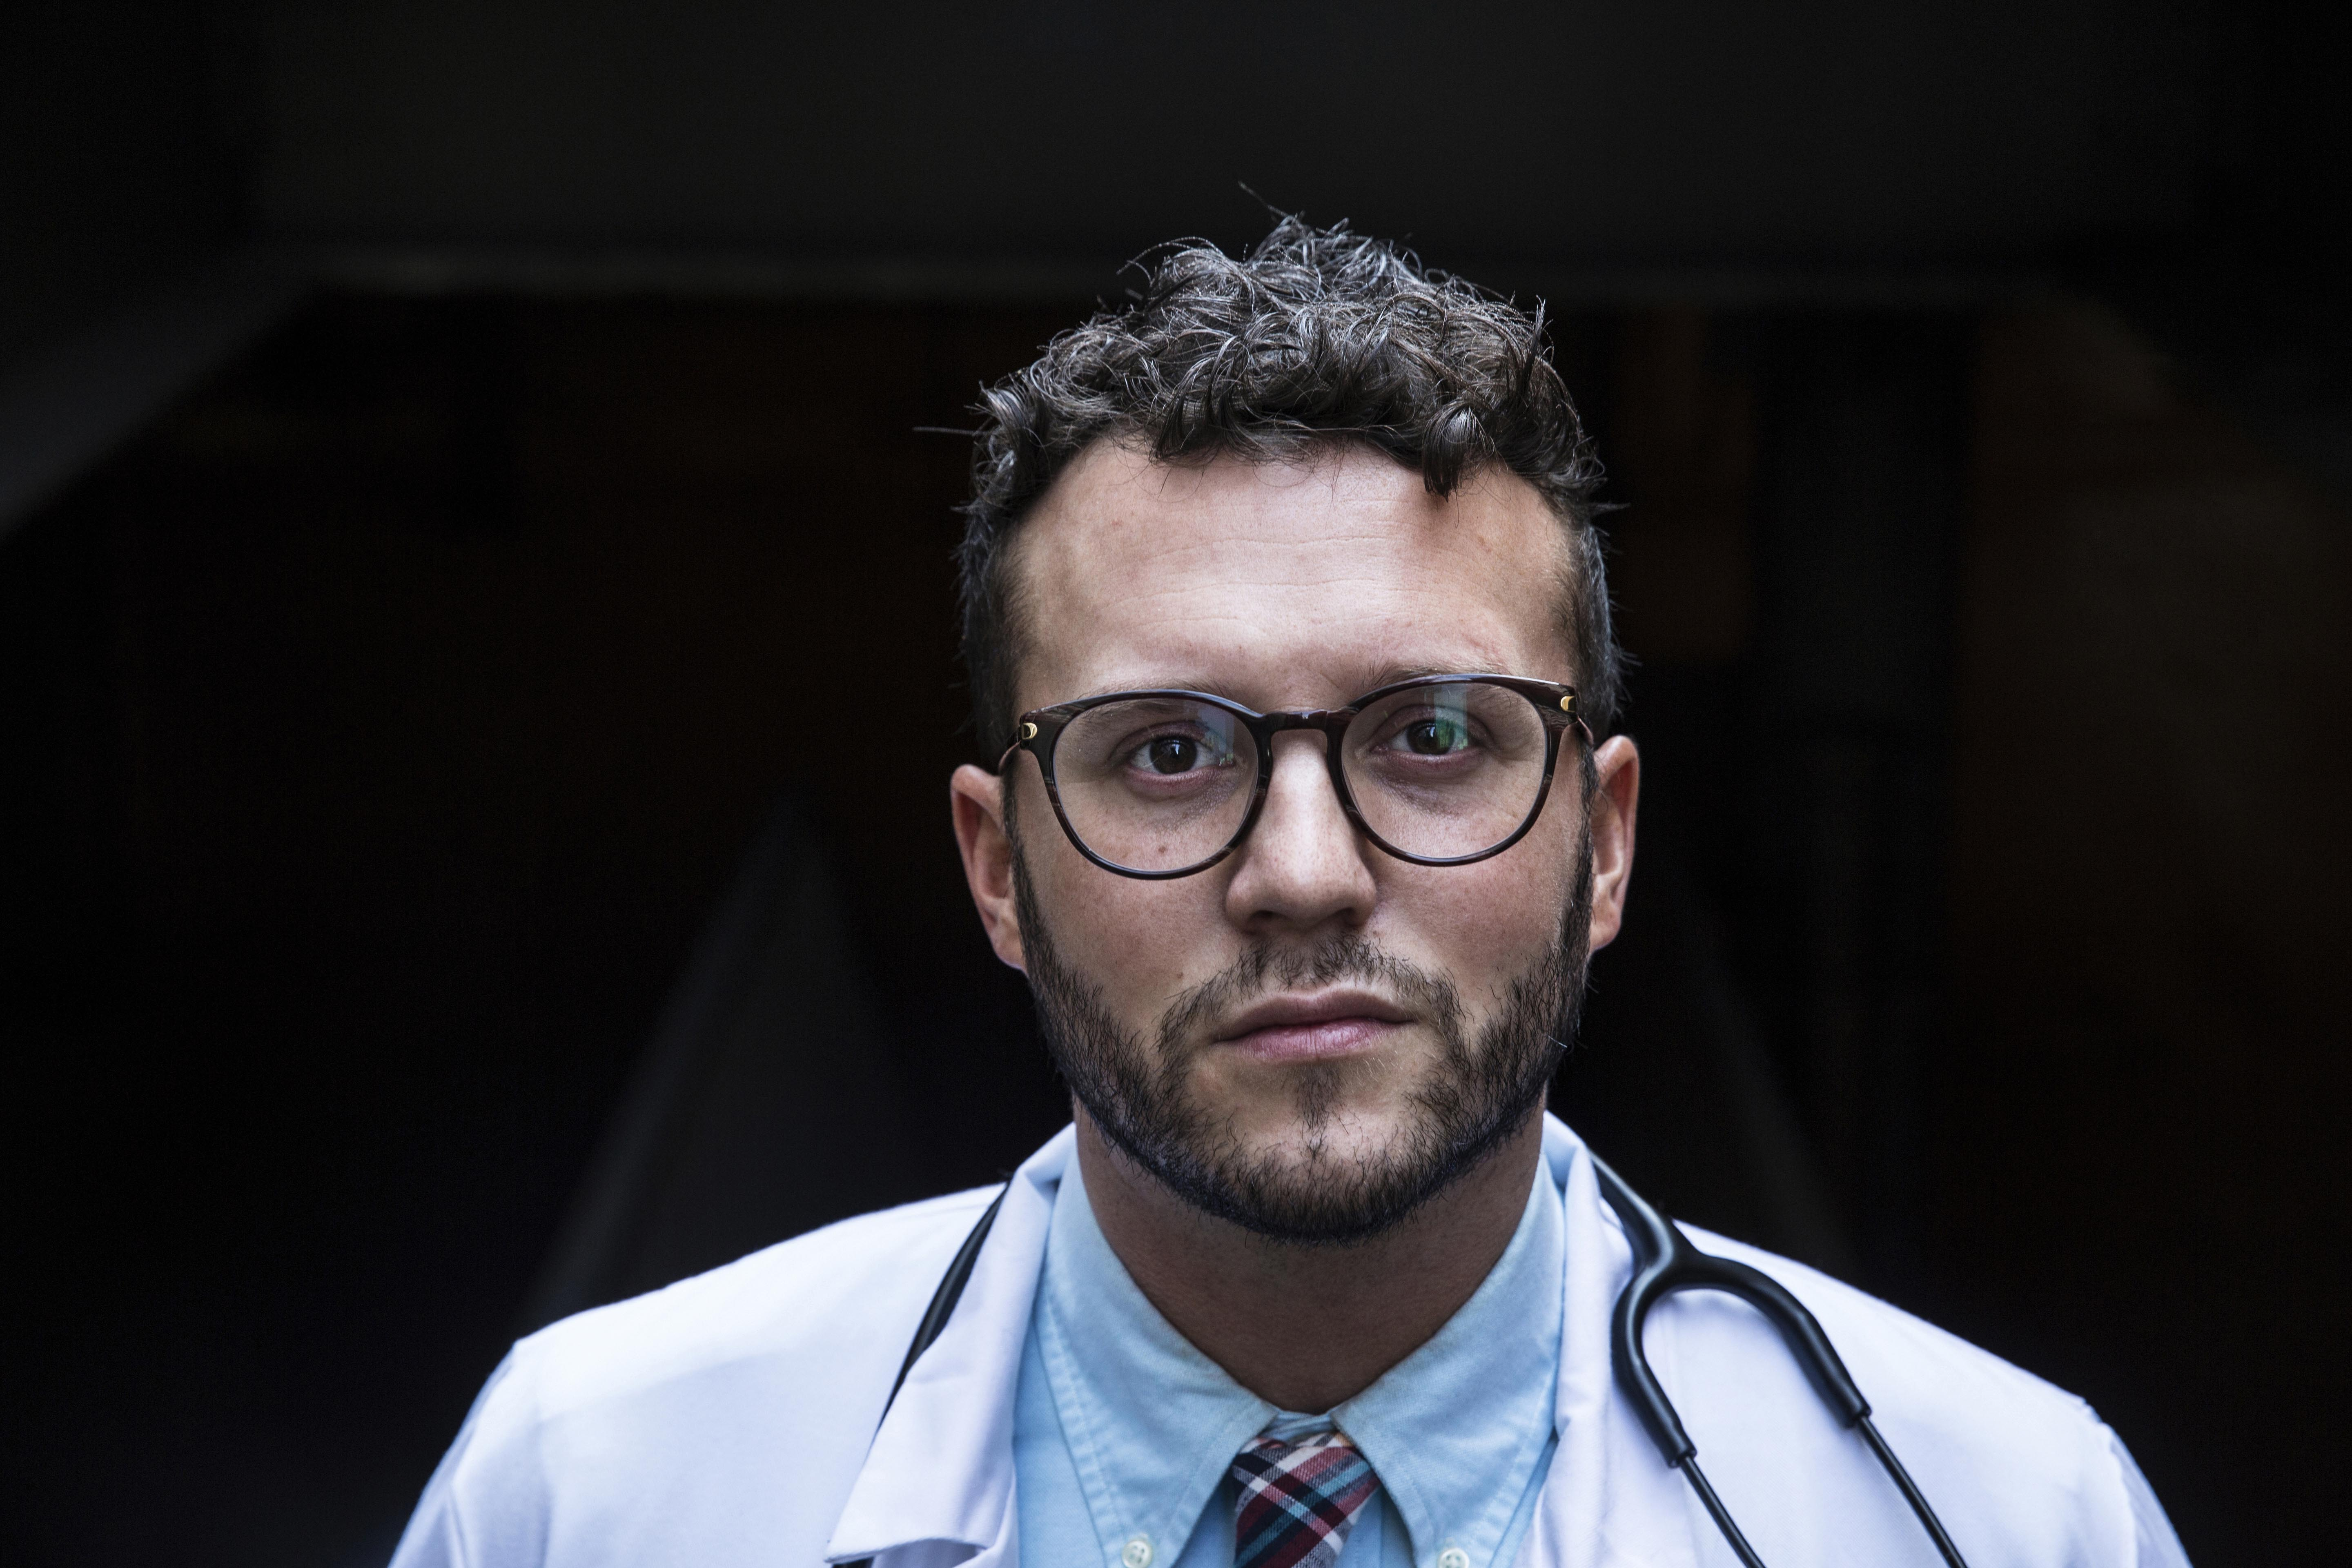 Corey Deburghgraeve is an anesthesiologist at University of Illinois Hospital in Chicago. MUST CREDIT: Photo for The Washington Post by Kyle Monk